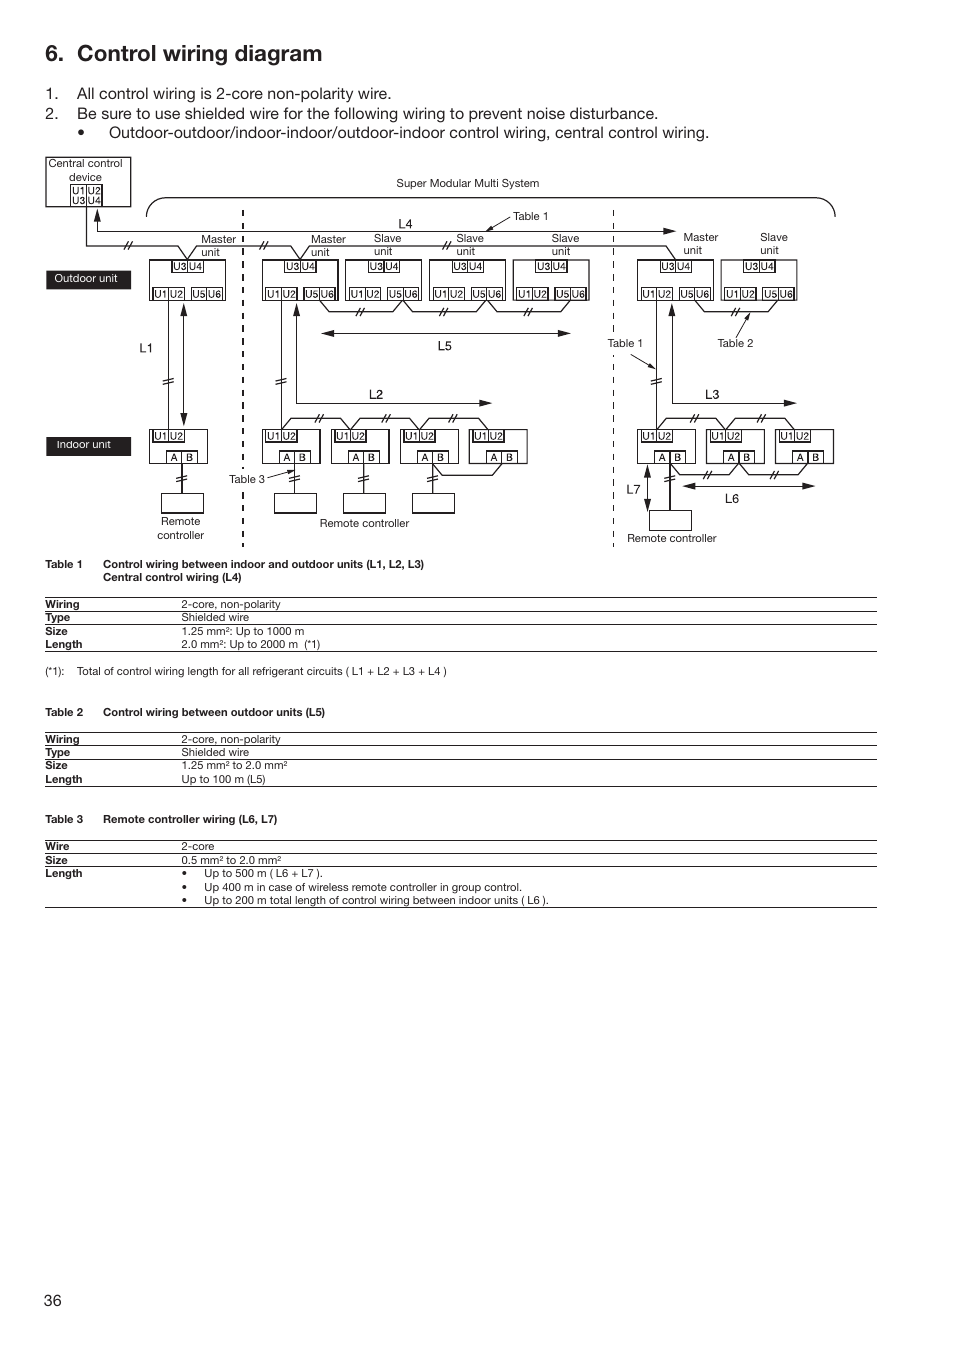 medium resolution of control wiring diagram toshiba super modular multi hfc r 410a user manual page 36 108